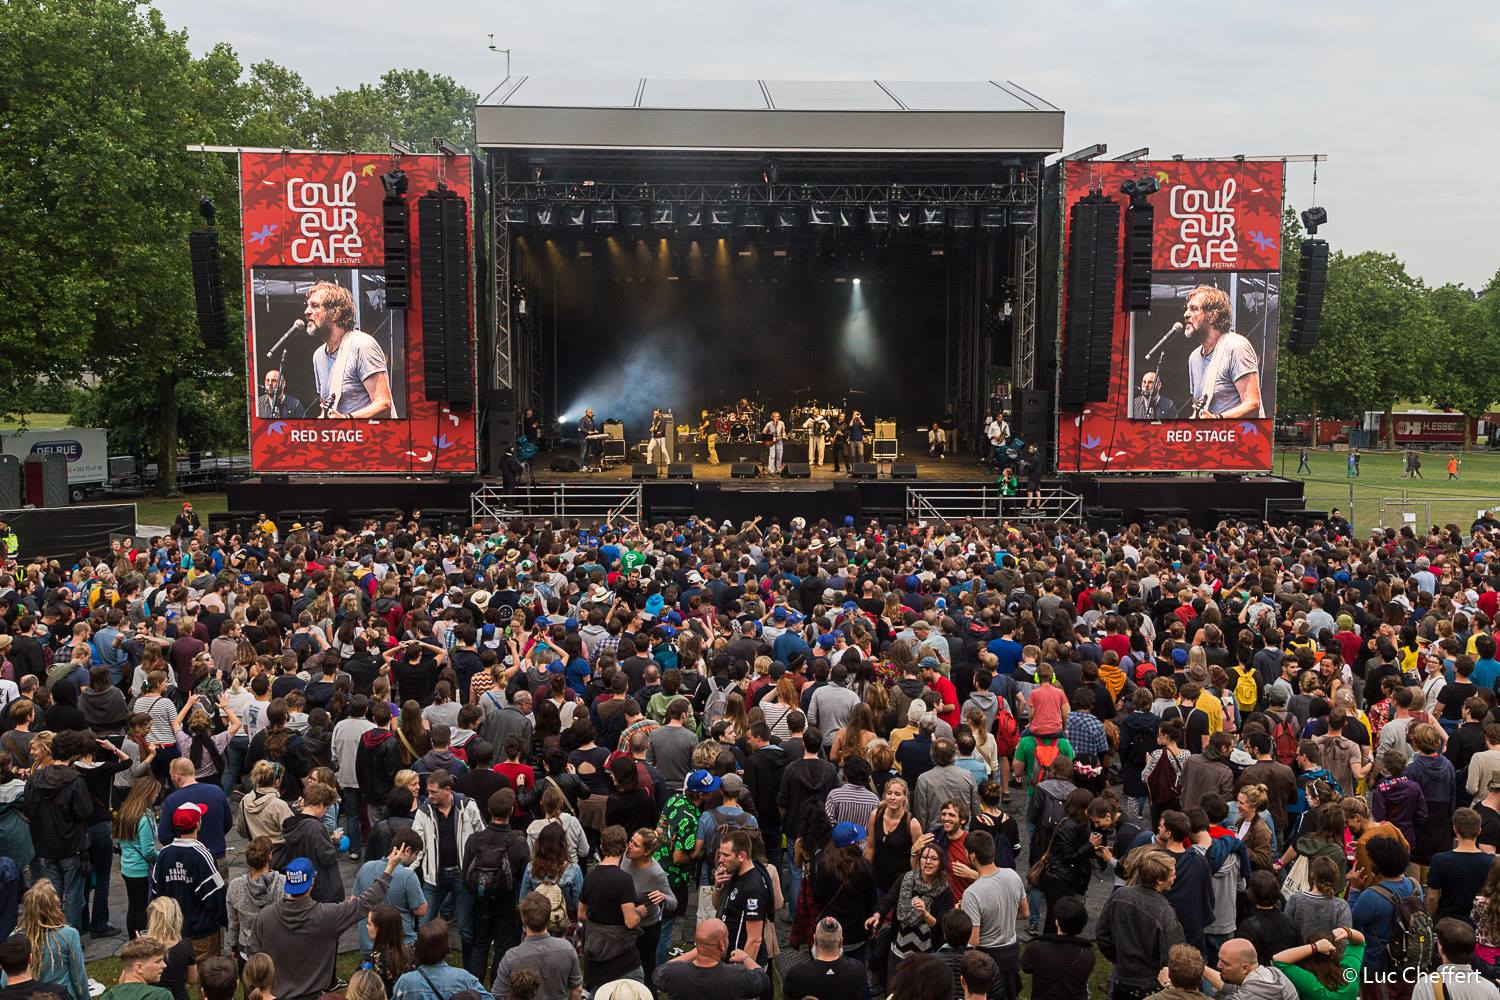 Couleur Cafe 2017 Gigant Stage